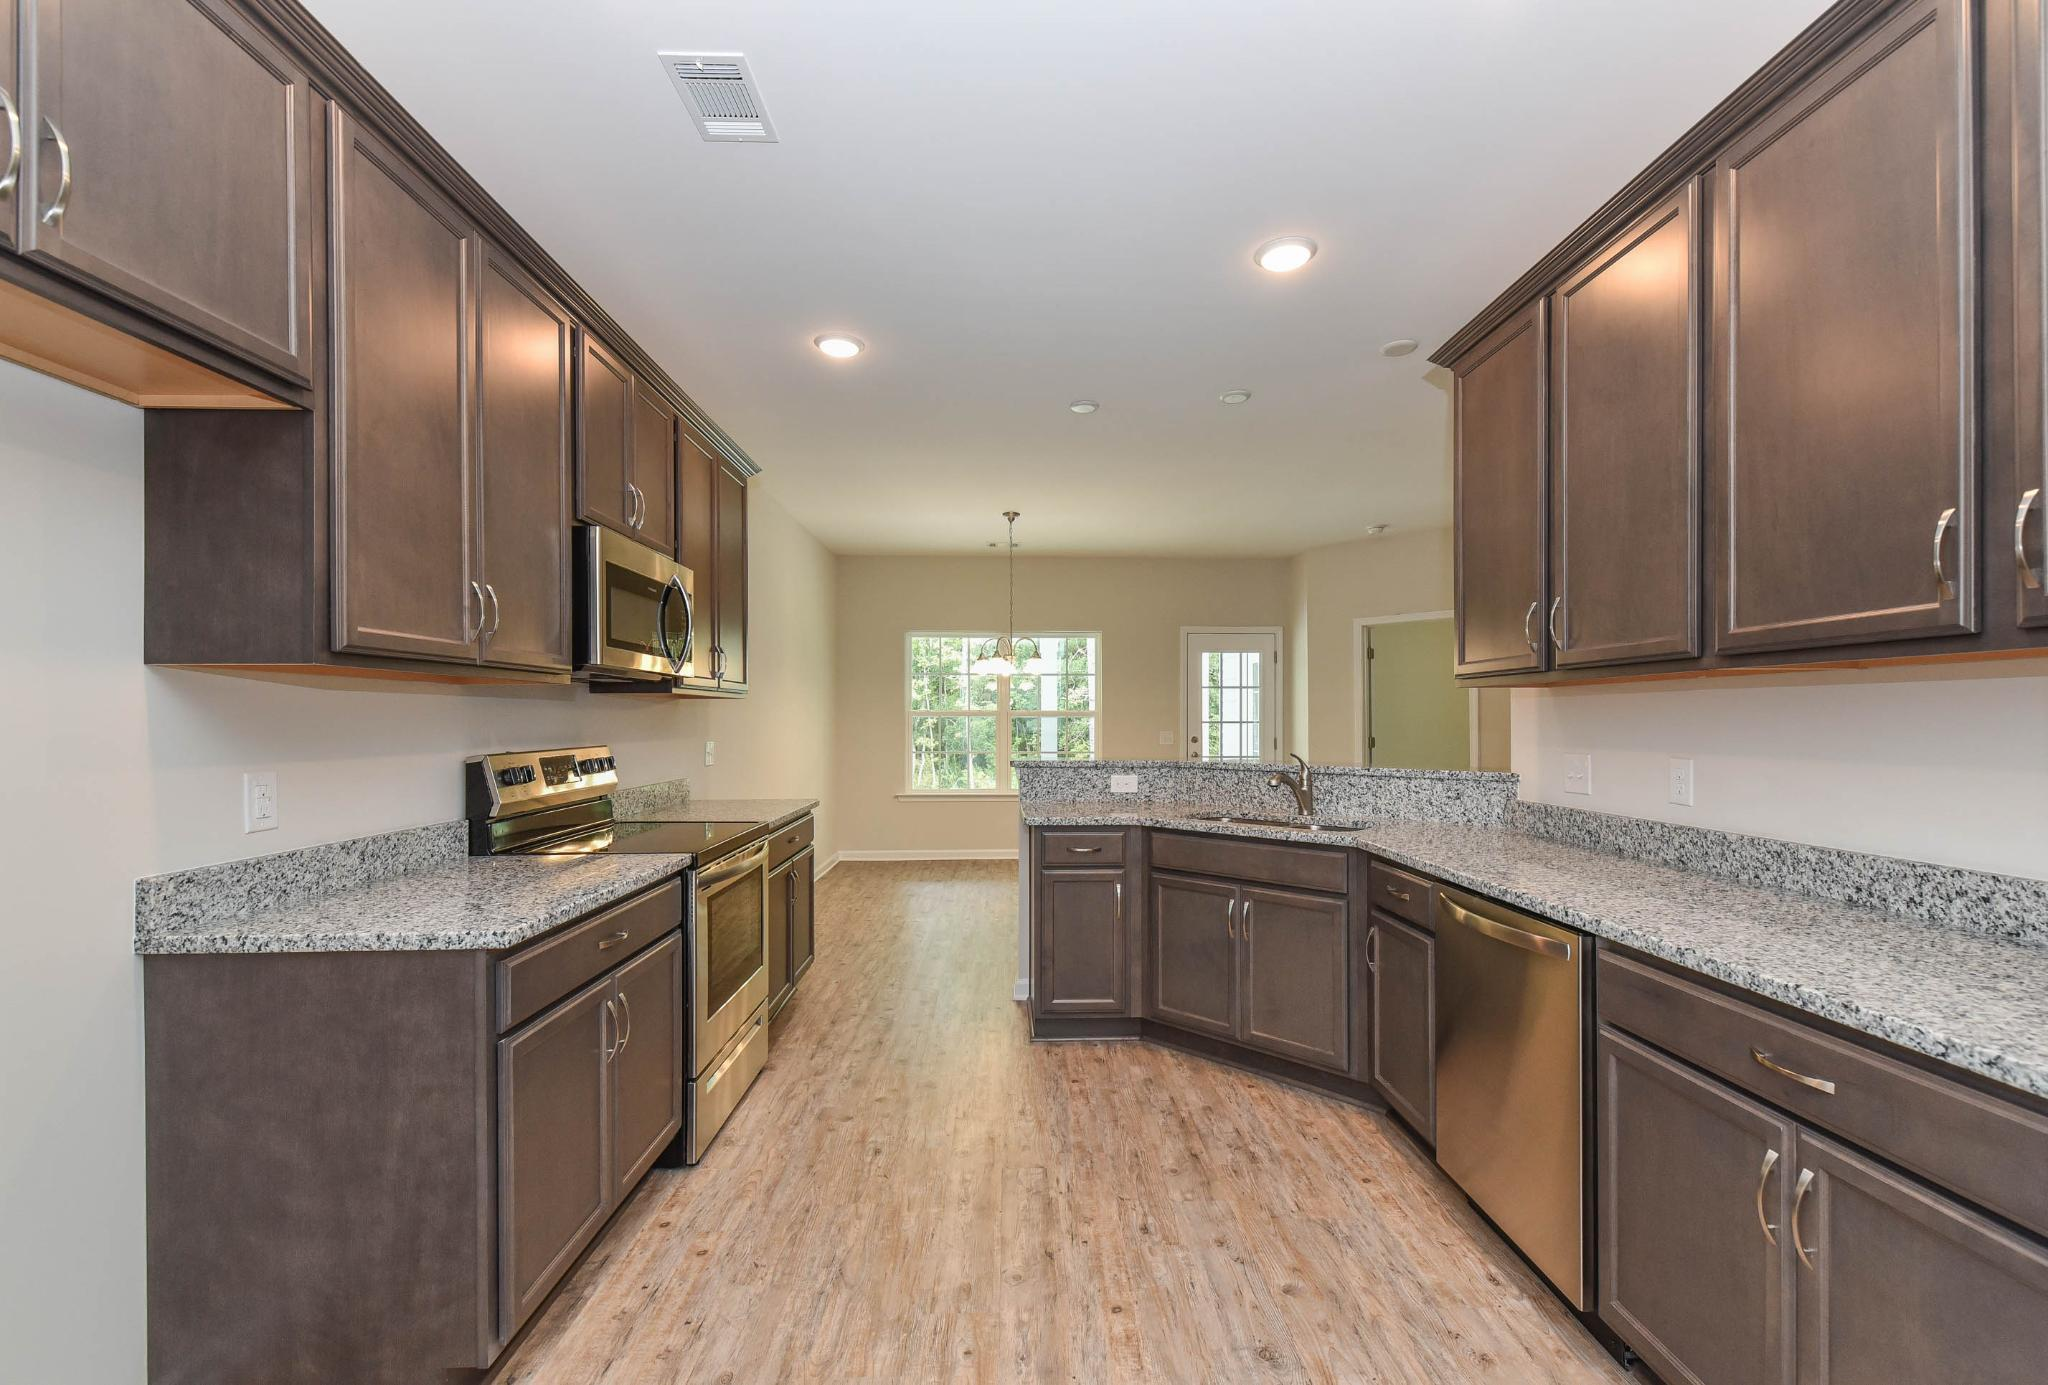 Kitchen featured in the Wassaw By Ernest Homes in Savannah, GA